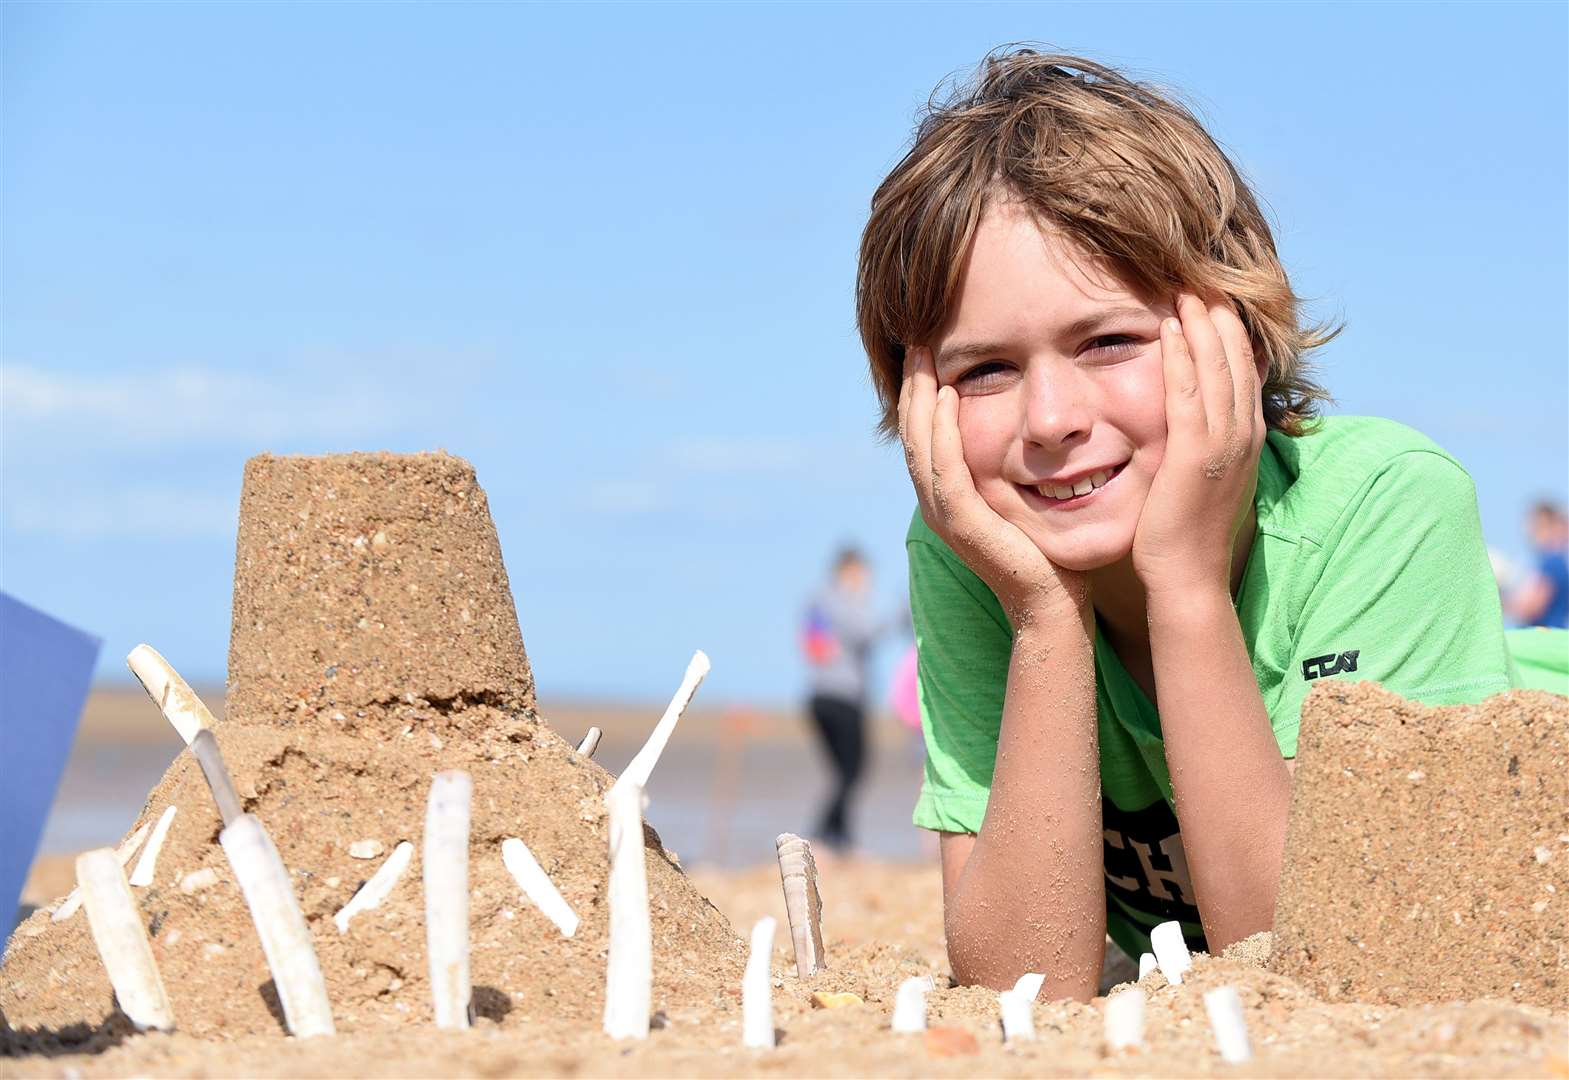 Life's a beach as sand sculptors get creative at Old Hunstanton